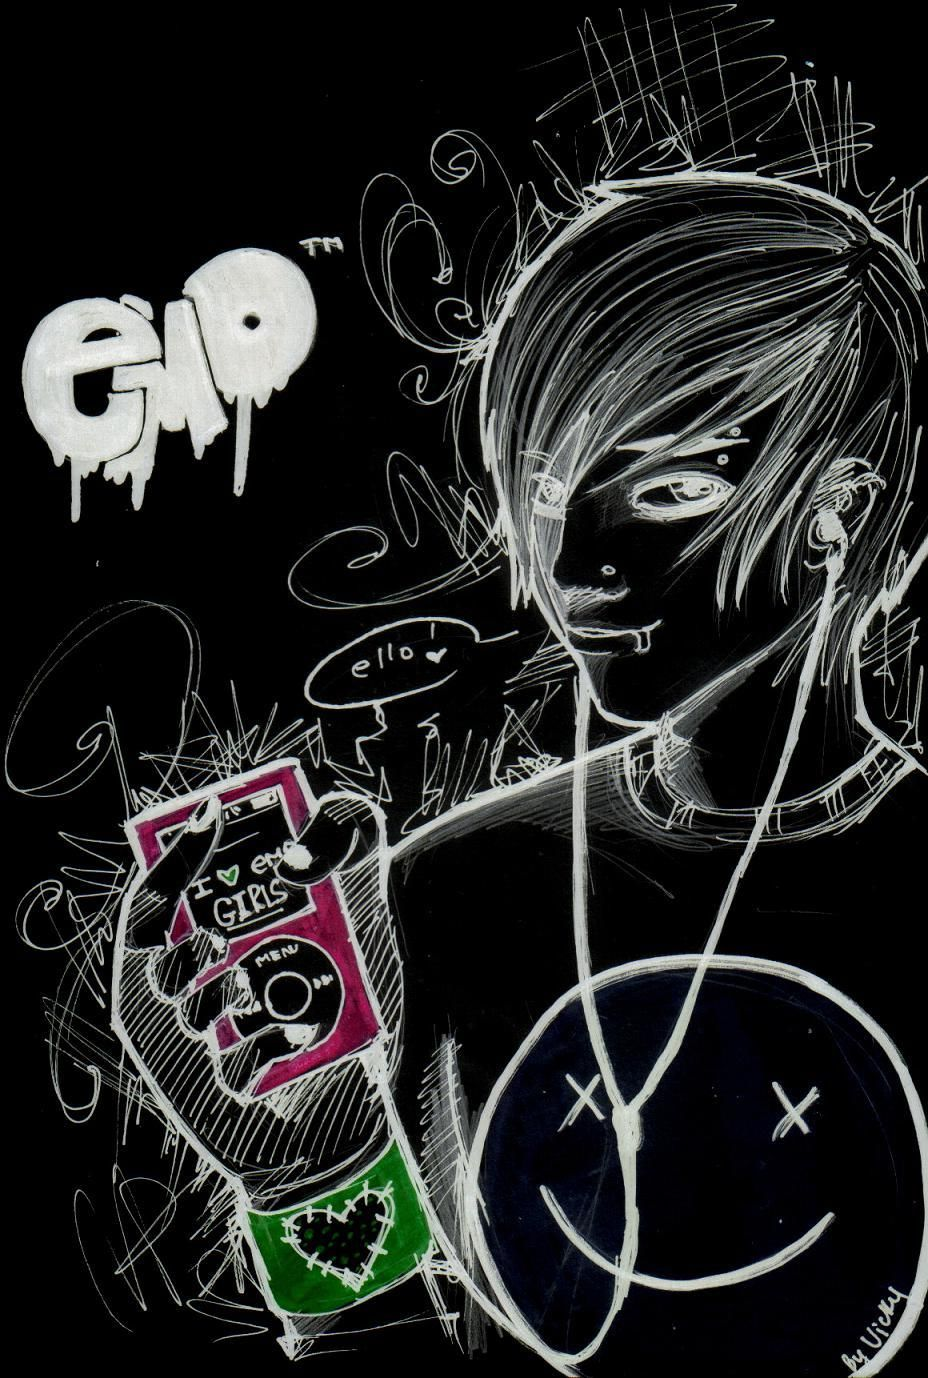 Emo Girl Wallpaper Wallpaper In 2019 Emo Wallpaper Emo Cartoons